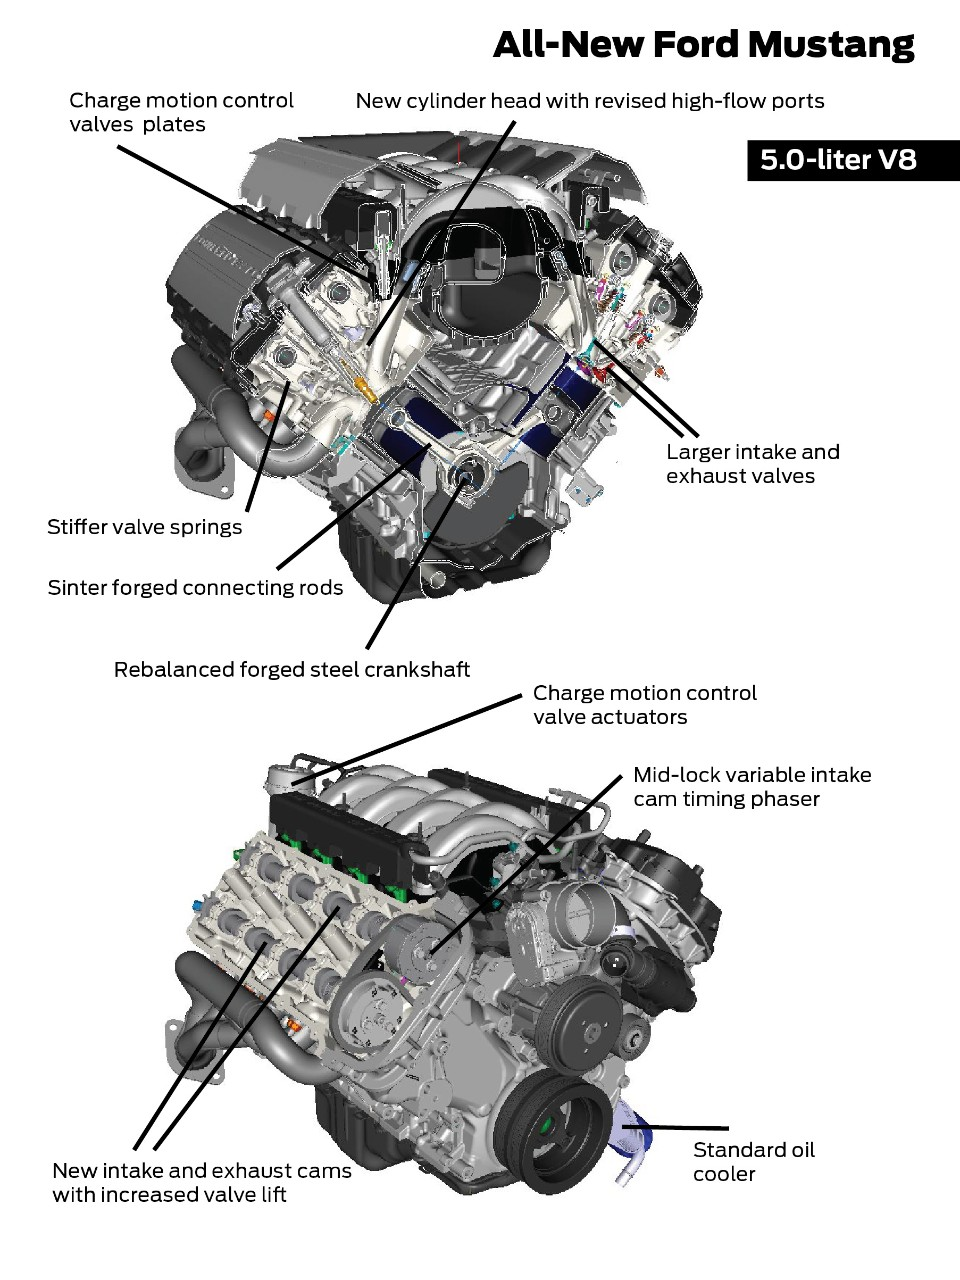 2015-17 ford coyote mustang engine specs 5 0l